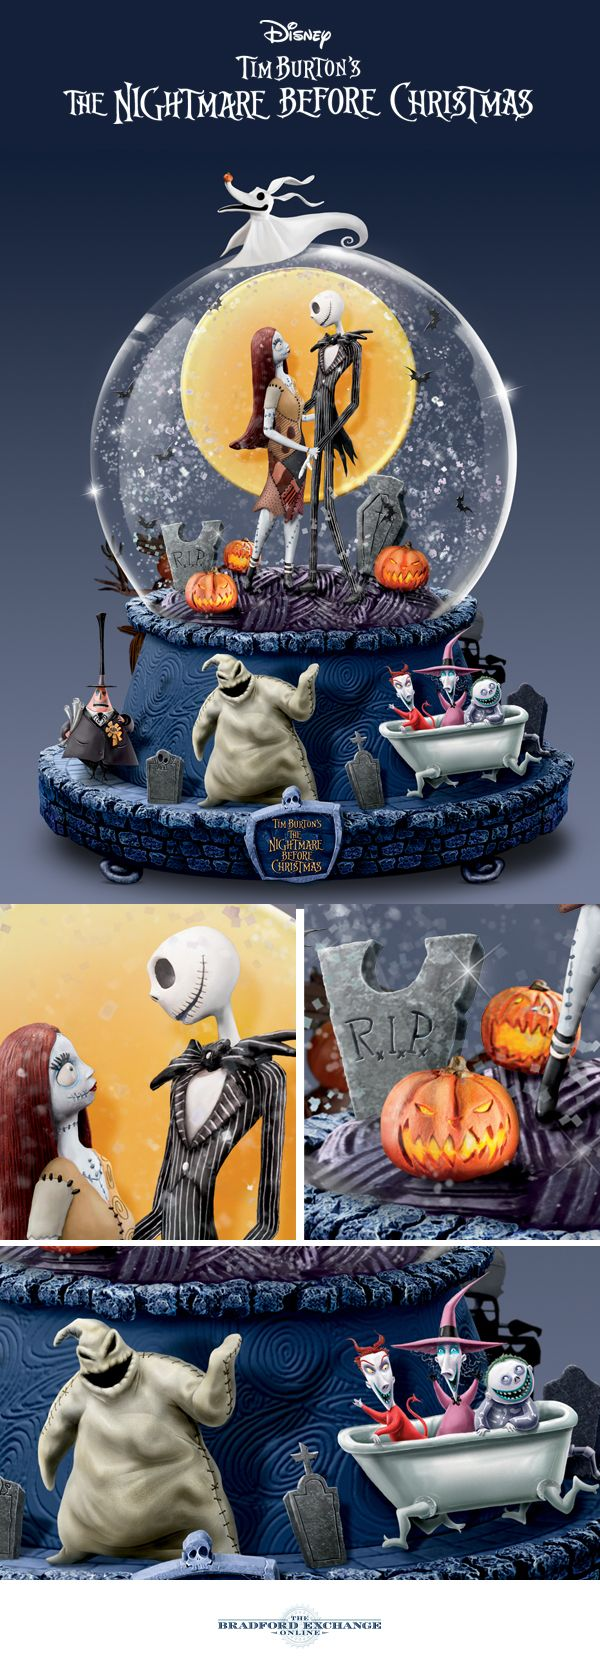 "When Jack and Sally confessed their love for each other, it was a movie moment we wanted to hold on to forever. Now you can with this Nightmare Before Christmas glitter globe, perfectly capturing the beloved characters' iconic scene, amidst glitter and black bat swirls, a rotating base and the movie's famous ""Overture"" tune providing the soundtrack."